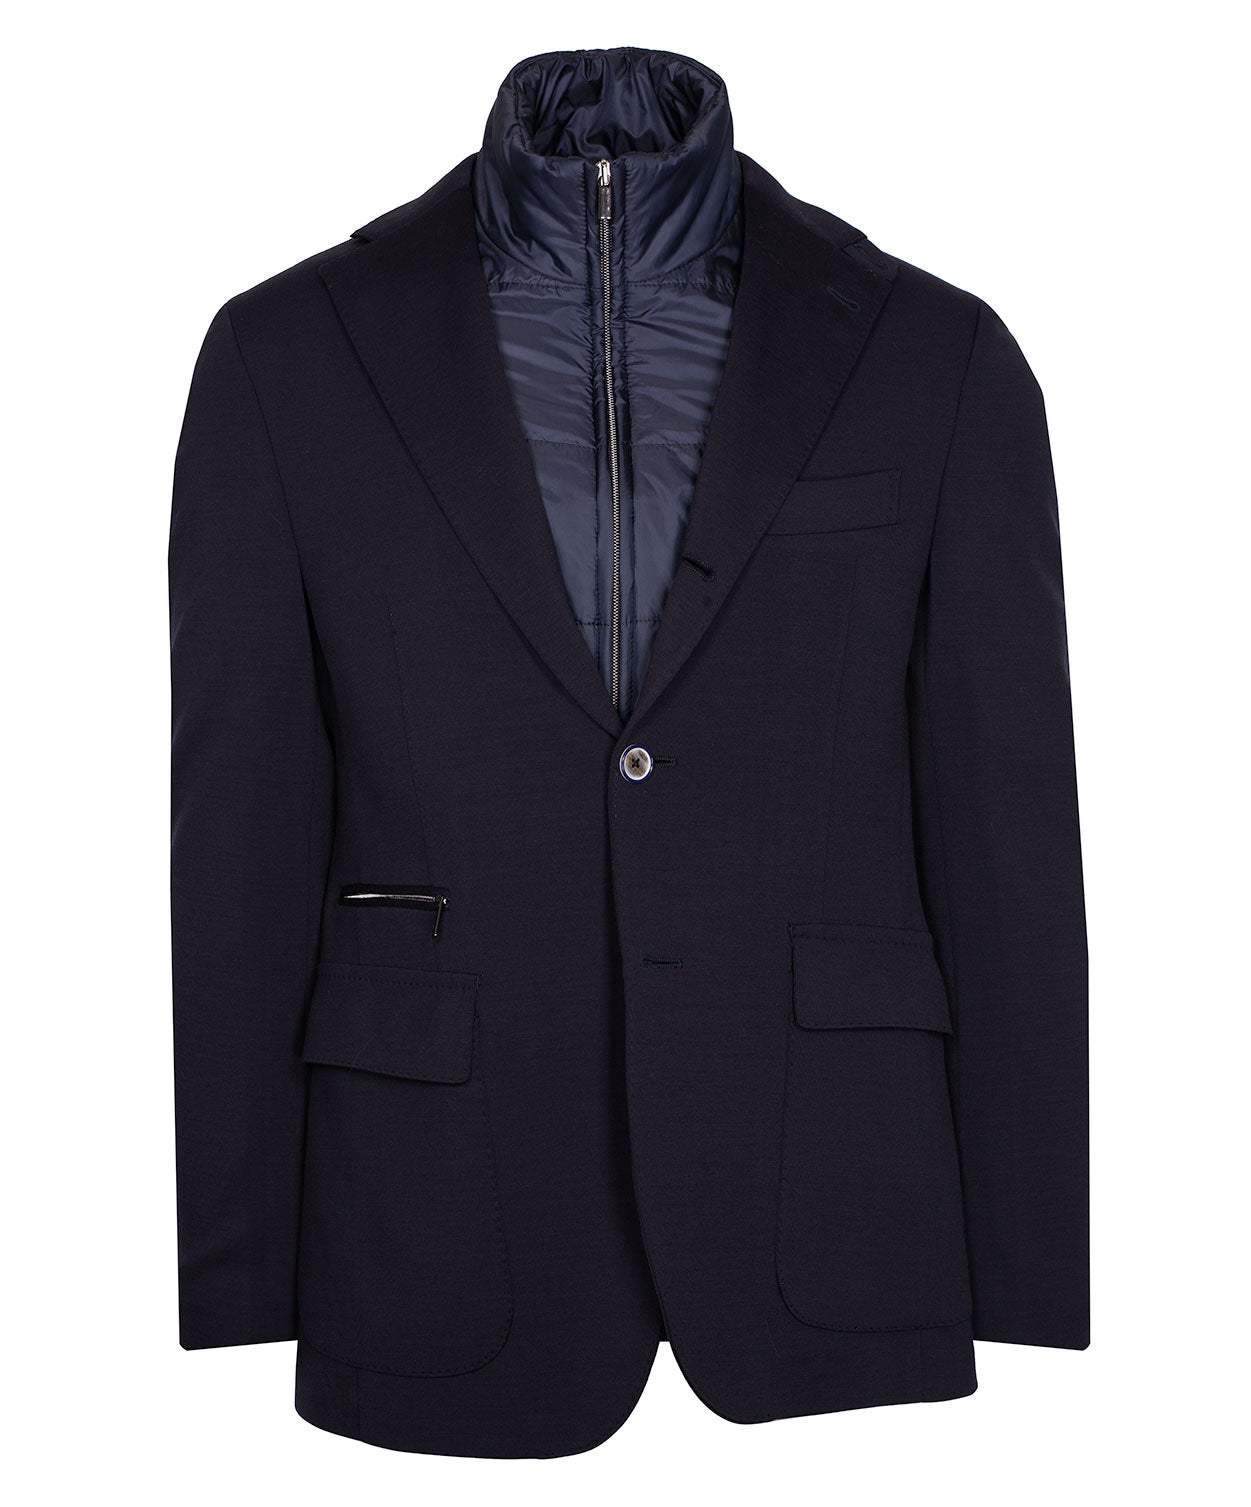 Tristan Travel  Navy Hybrid Jacket